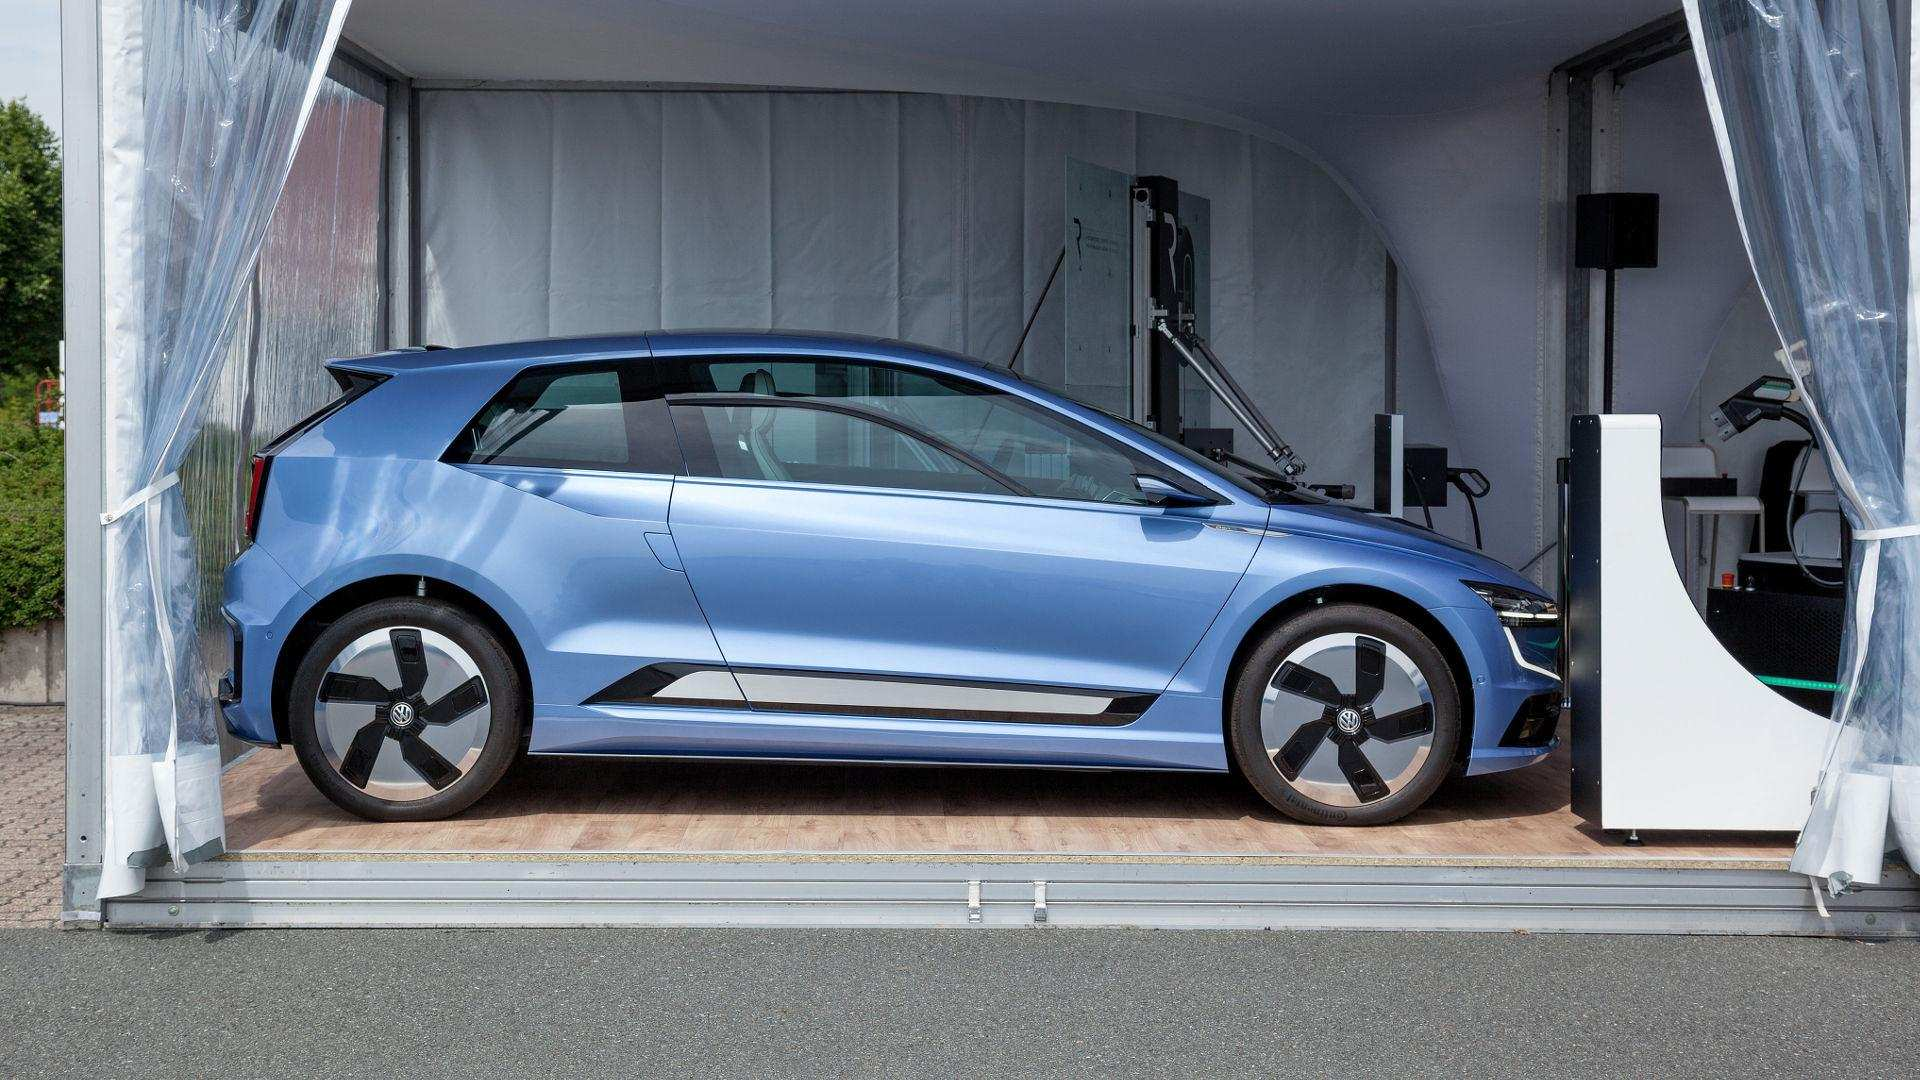 29 Great Golf Vw 2019 Rumors with Golf Vw 2019